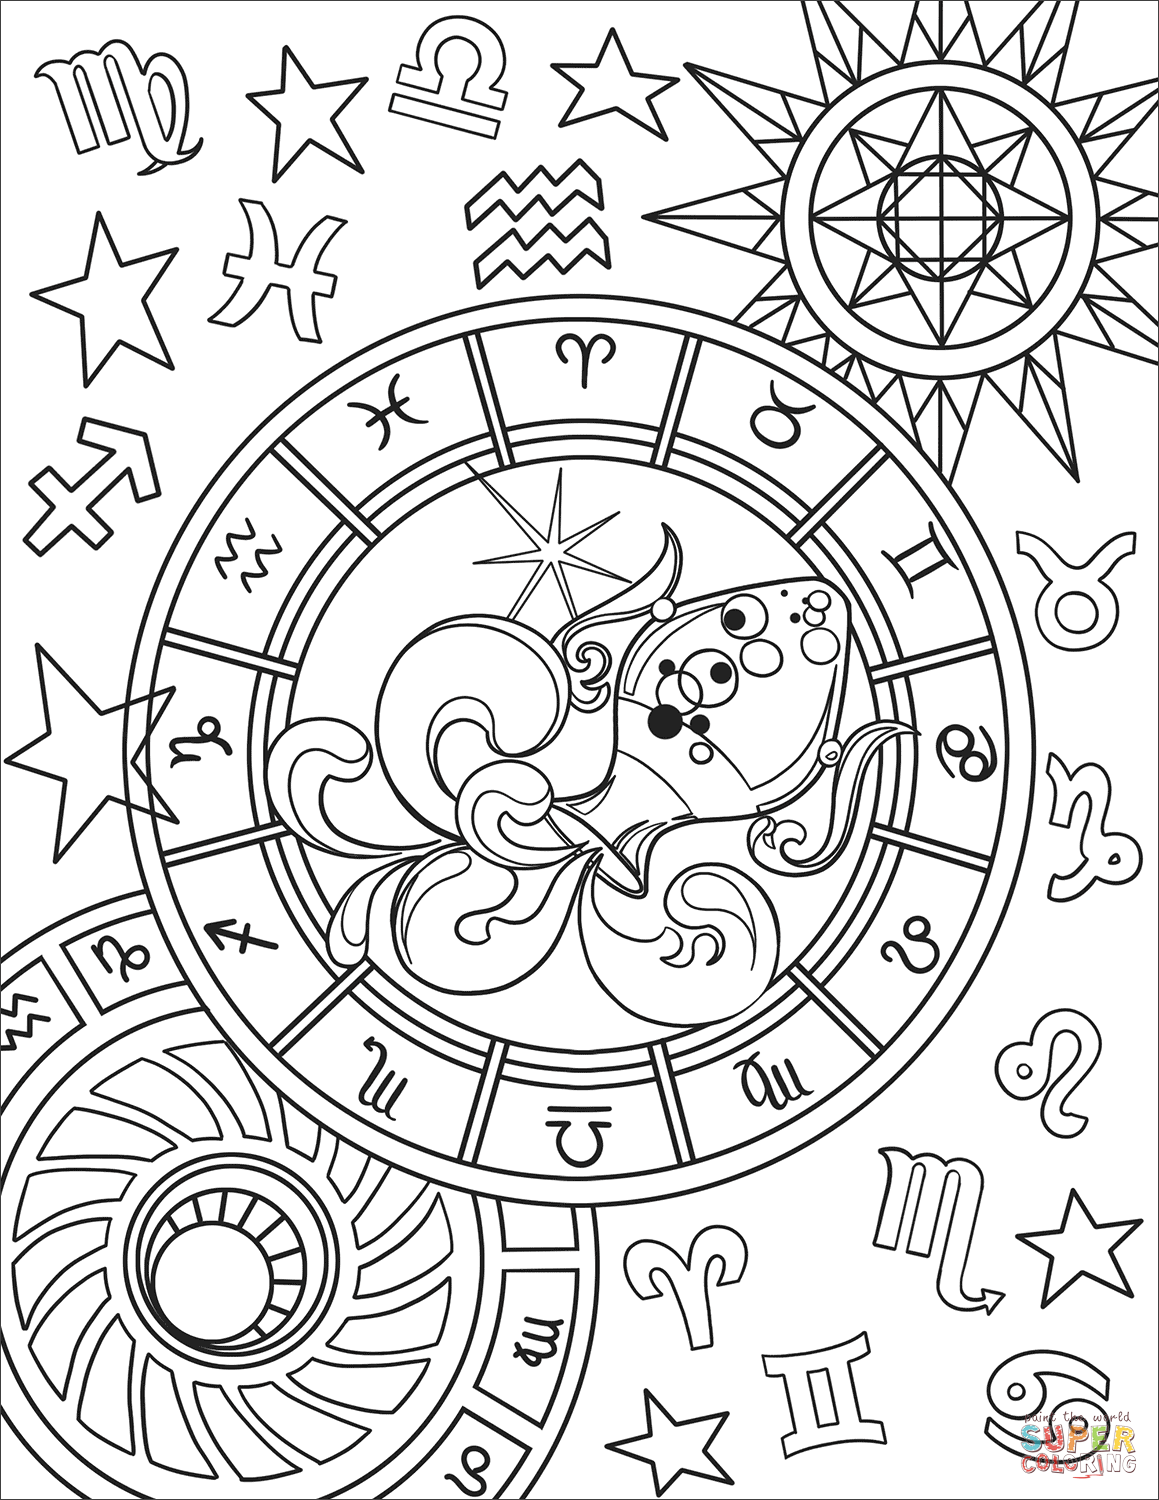 coloring sign free printable peace sign coloring pages cool2bkids coloring sign